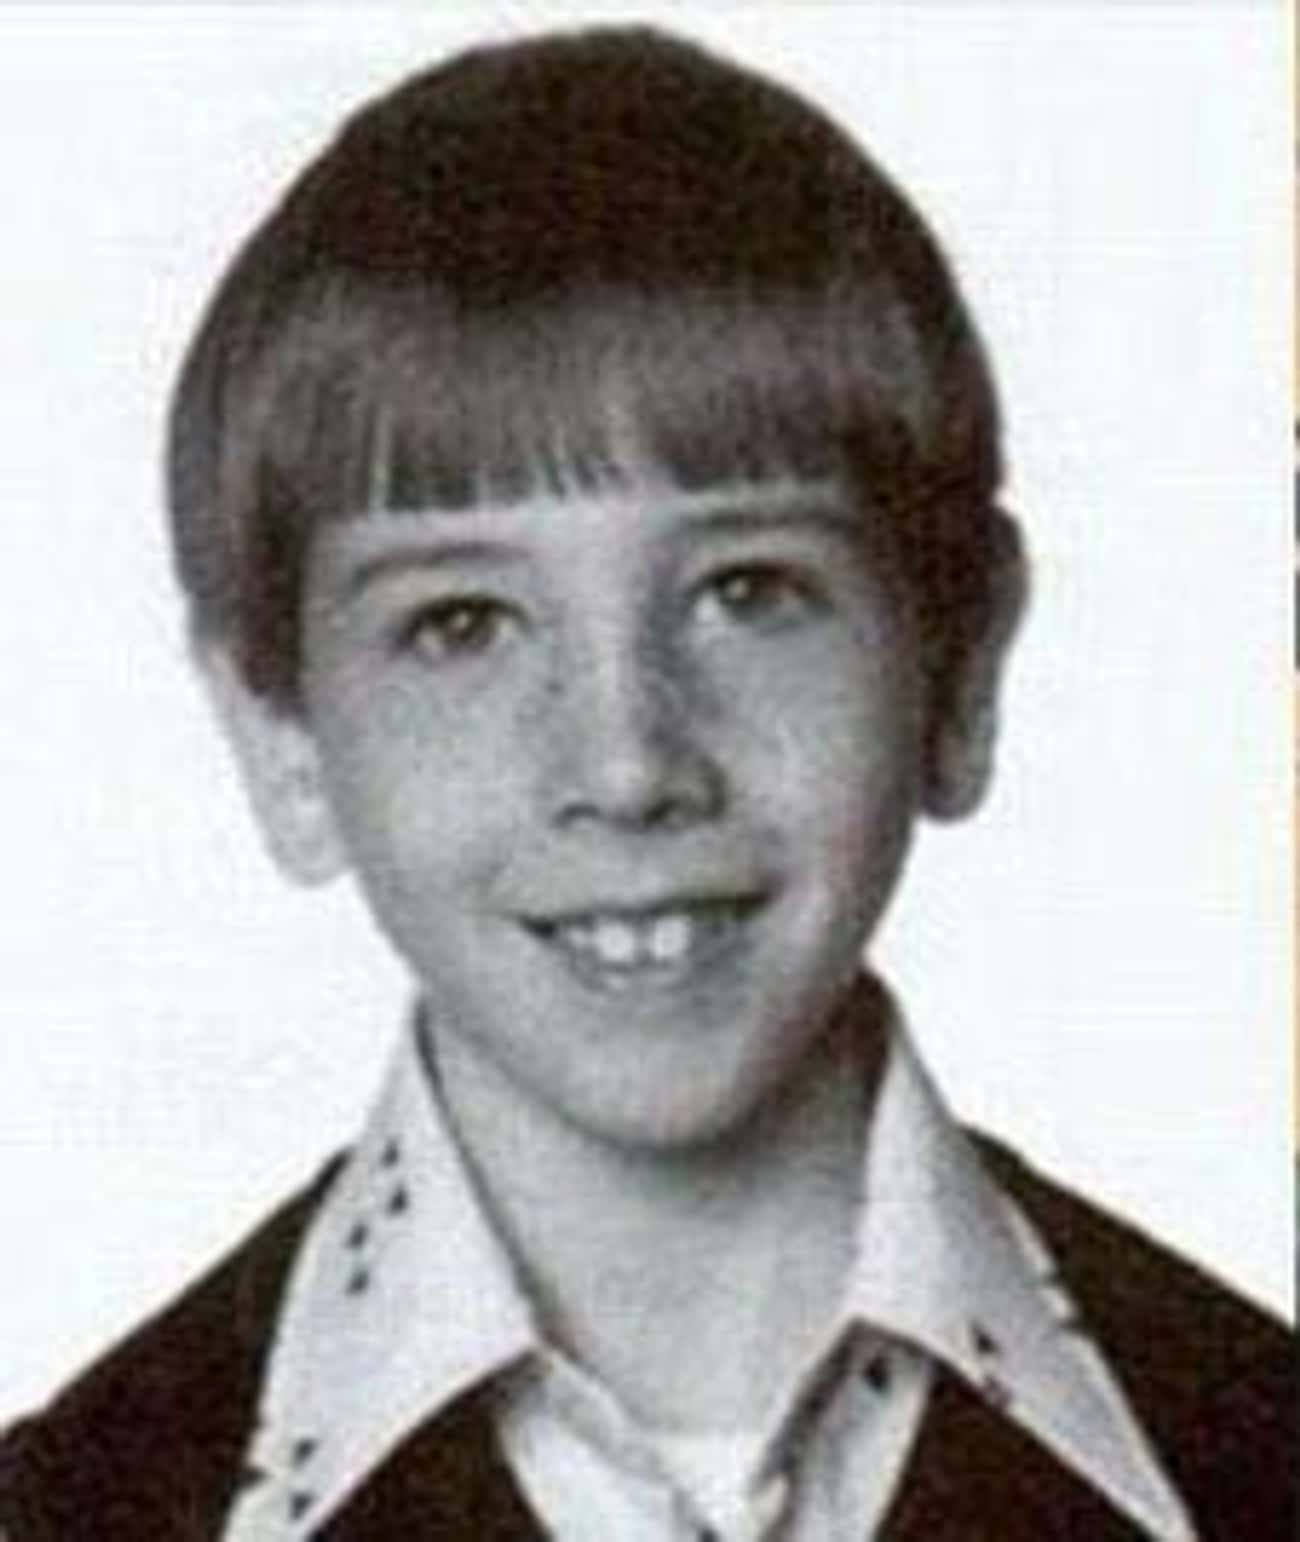 Young Marilyn Manson as a Chil is listed (or ranked) 1 on the list 15 Pictures of Young Marilyn Manson Before He Was Famous